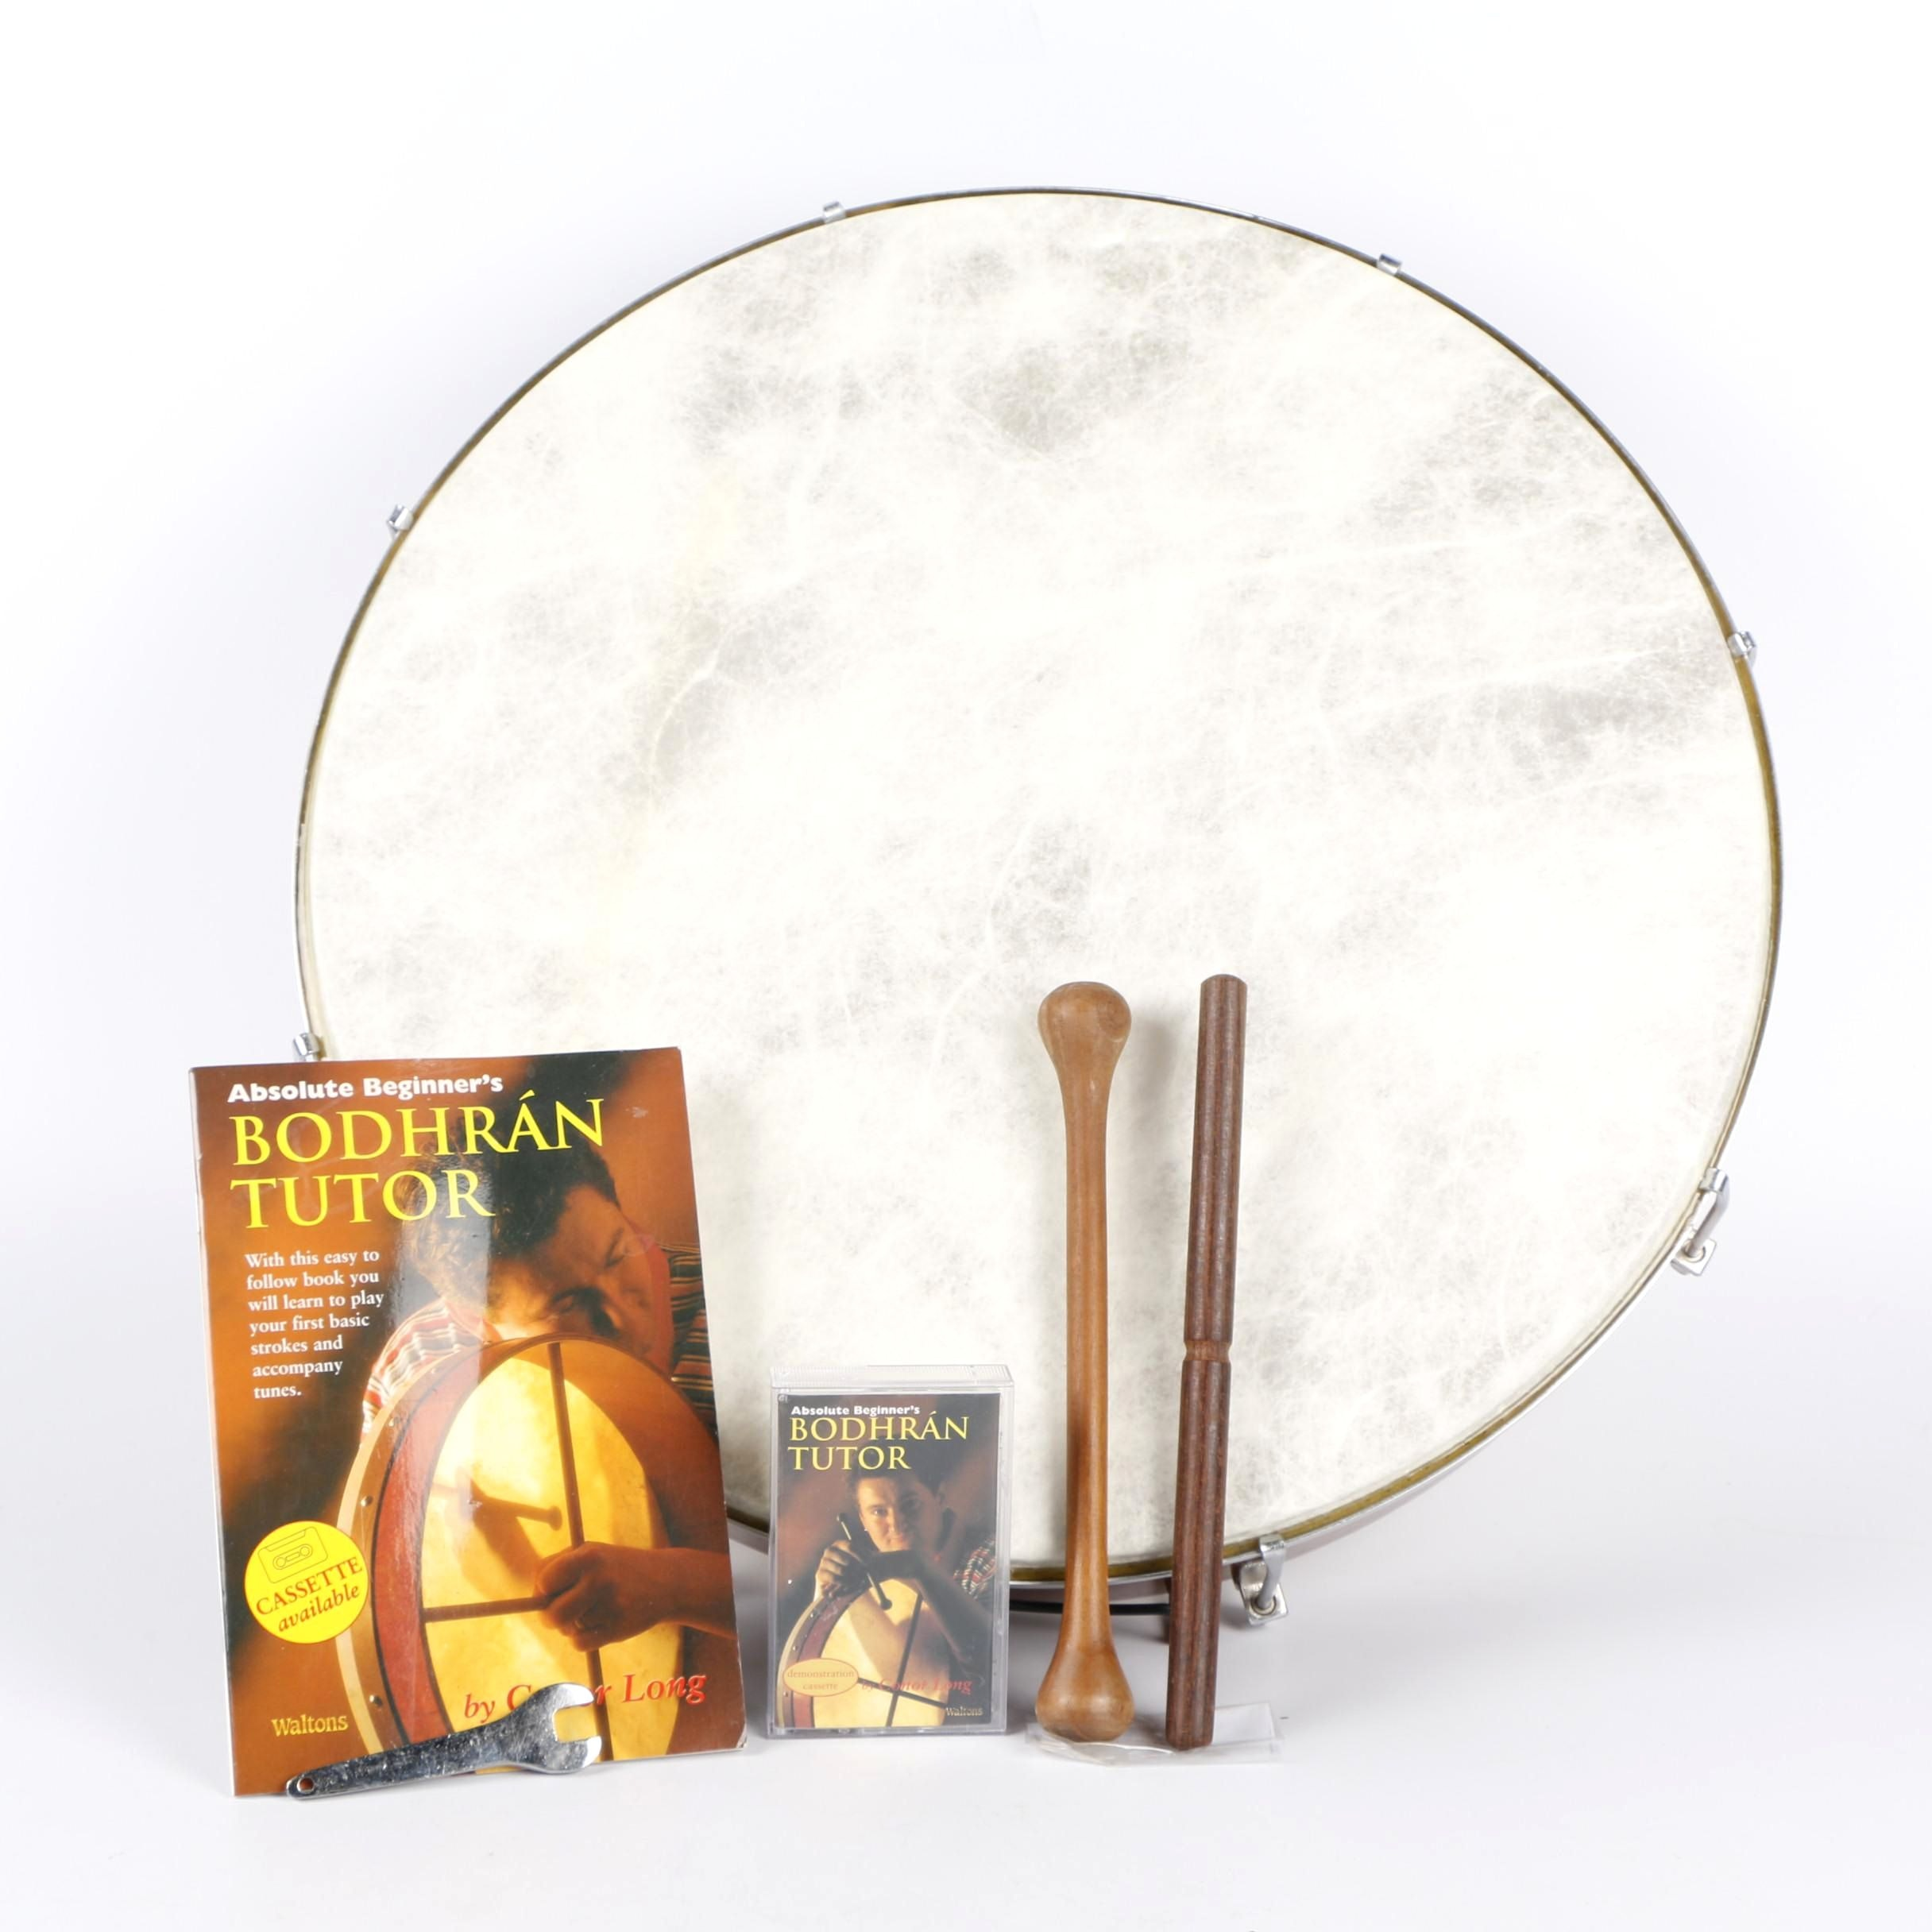 Irish Bodhrán Frame Drum with Book, Cassette, Tuning Wrench and Cipins